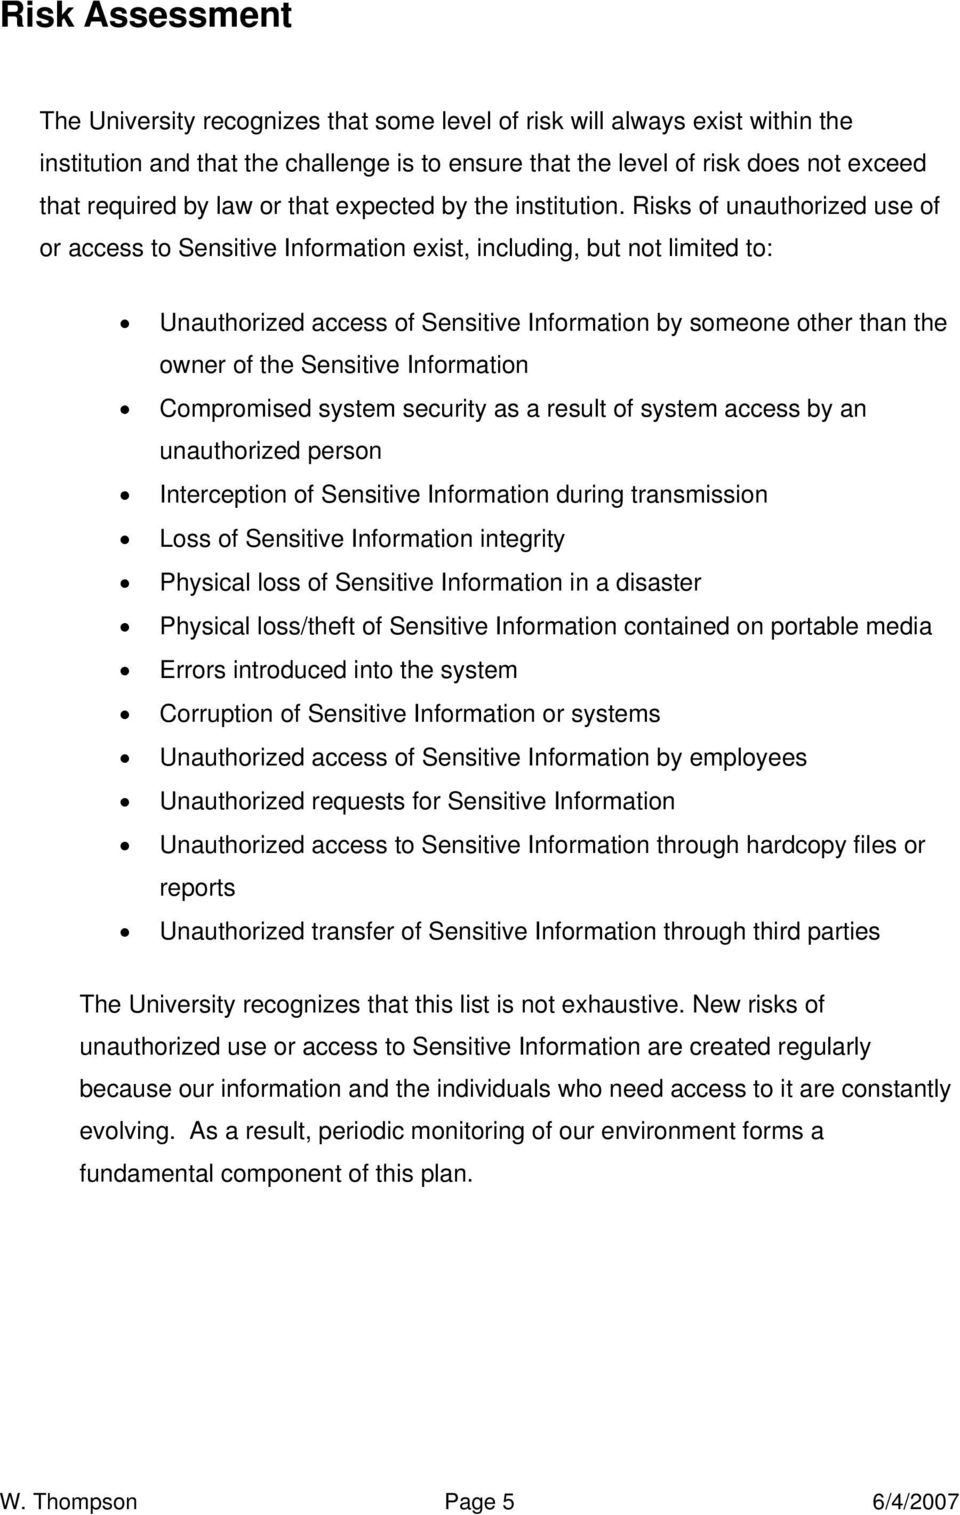 Risks of unauthorized use of or access to Sensitive Information exist, including, but not limited to: Unauthorized access of Sensitive Information by someone other than the owner of the Sensitive